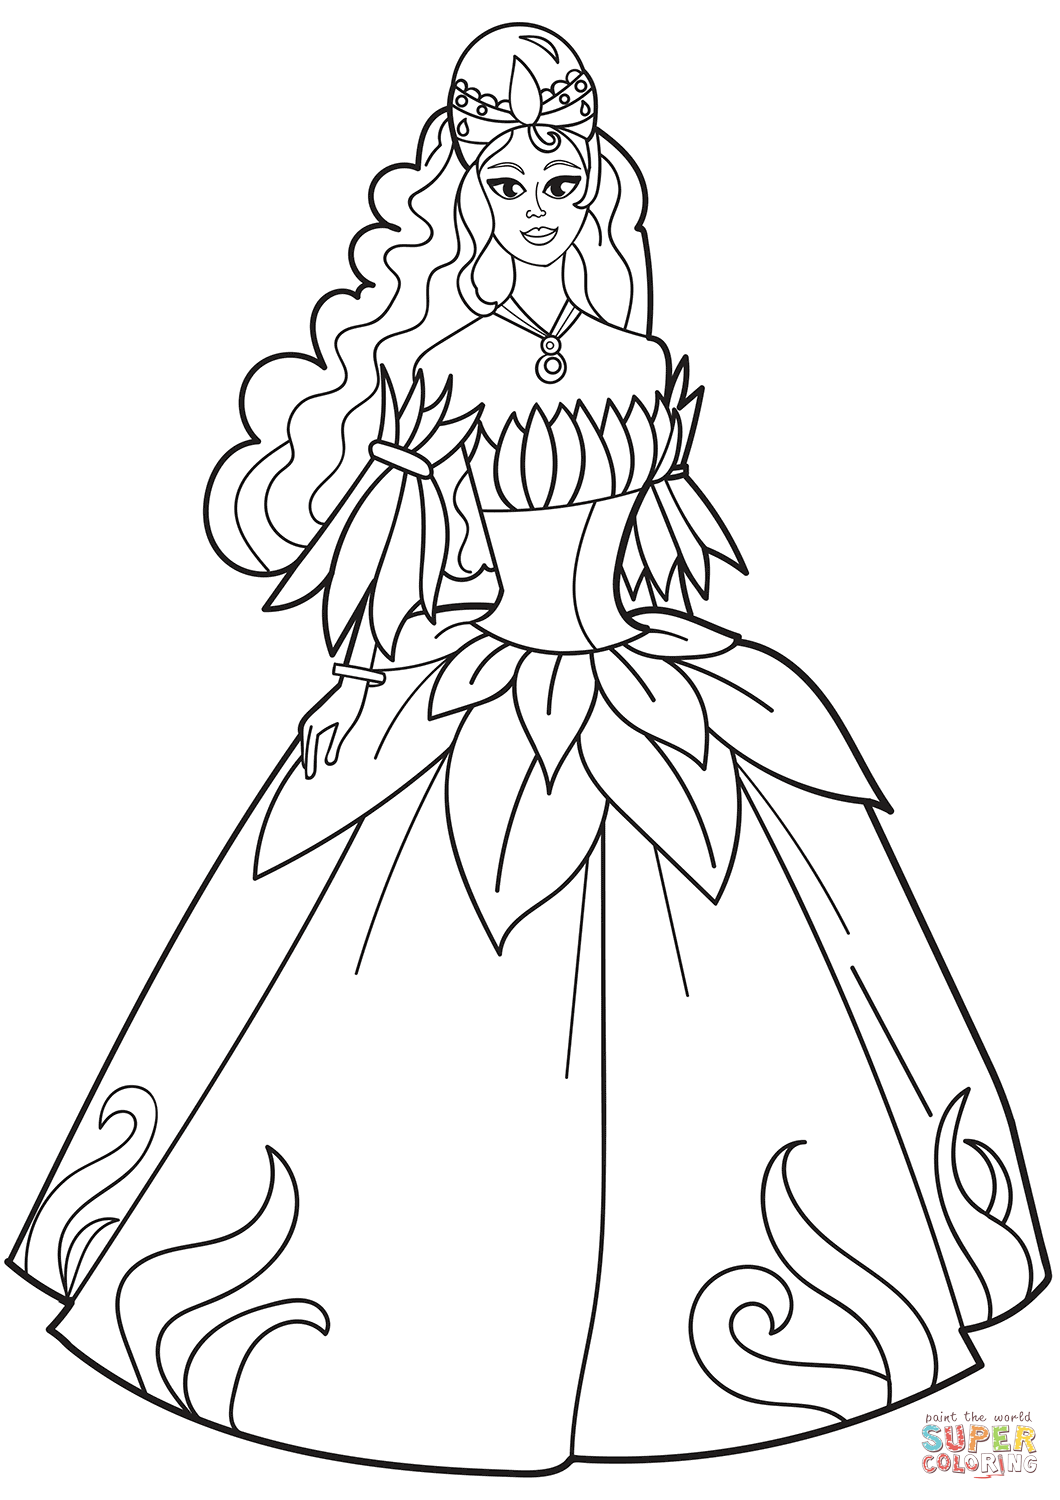 Princess In Flower Dress Coloring Page